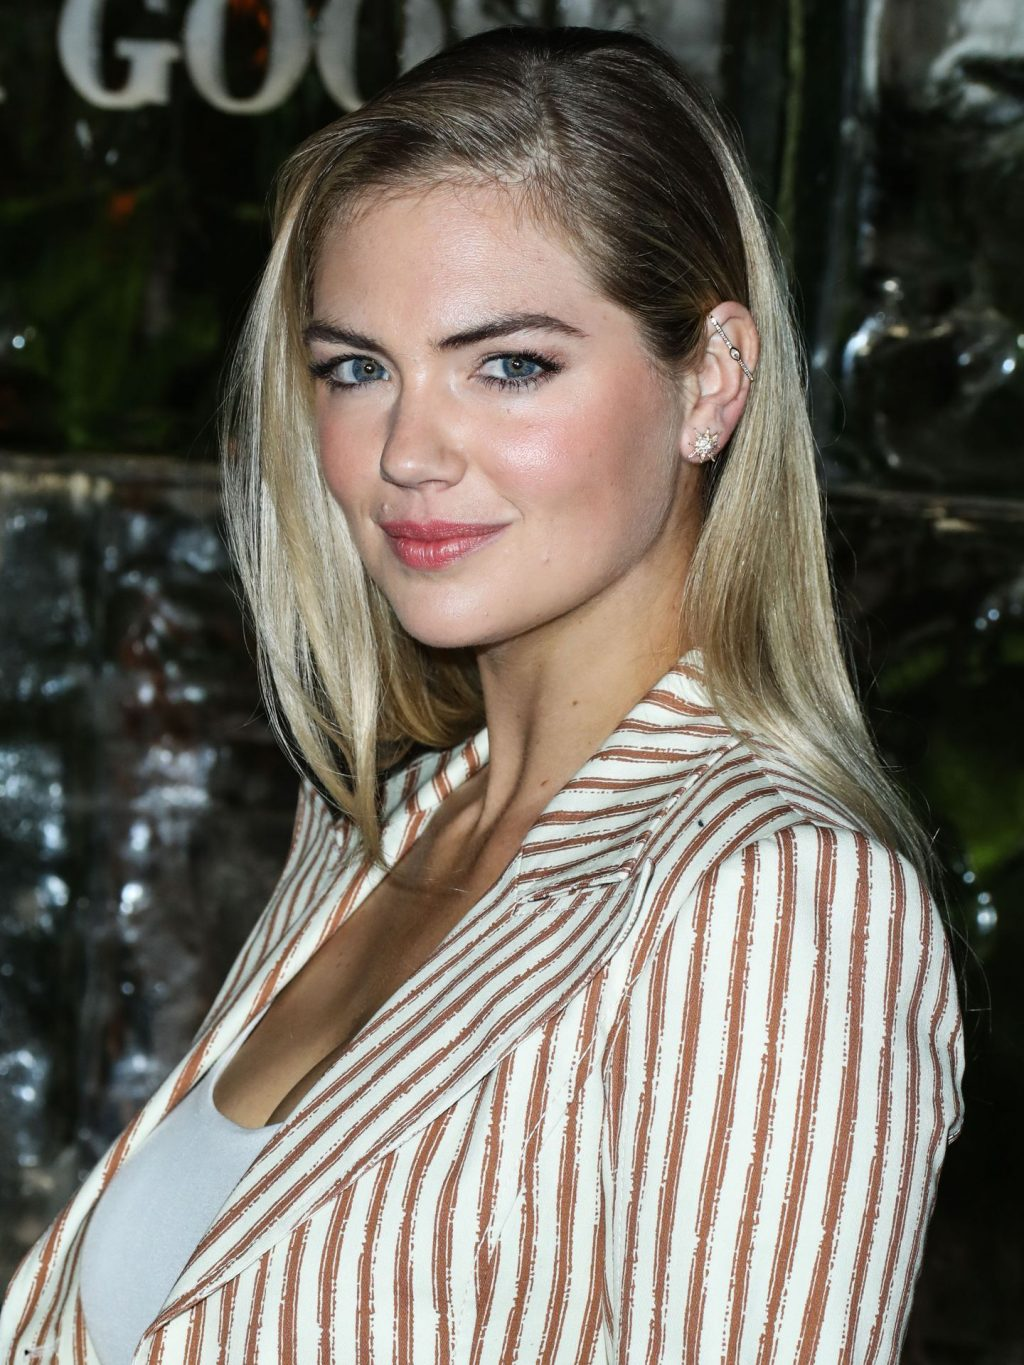 Kate Upton Sexy The Fappening Blog 69 1024x1365 - Kate Upton Attends Canada Goose And Vogue Cocktails & Conversations (104 Photos)